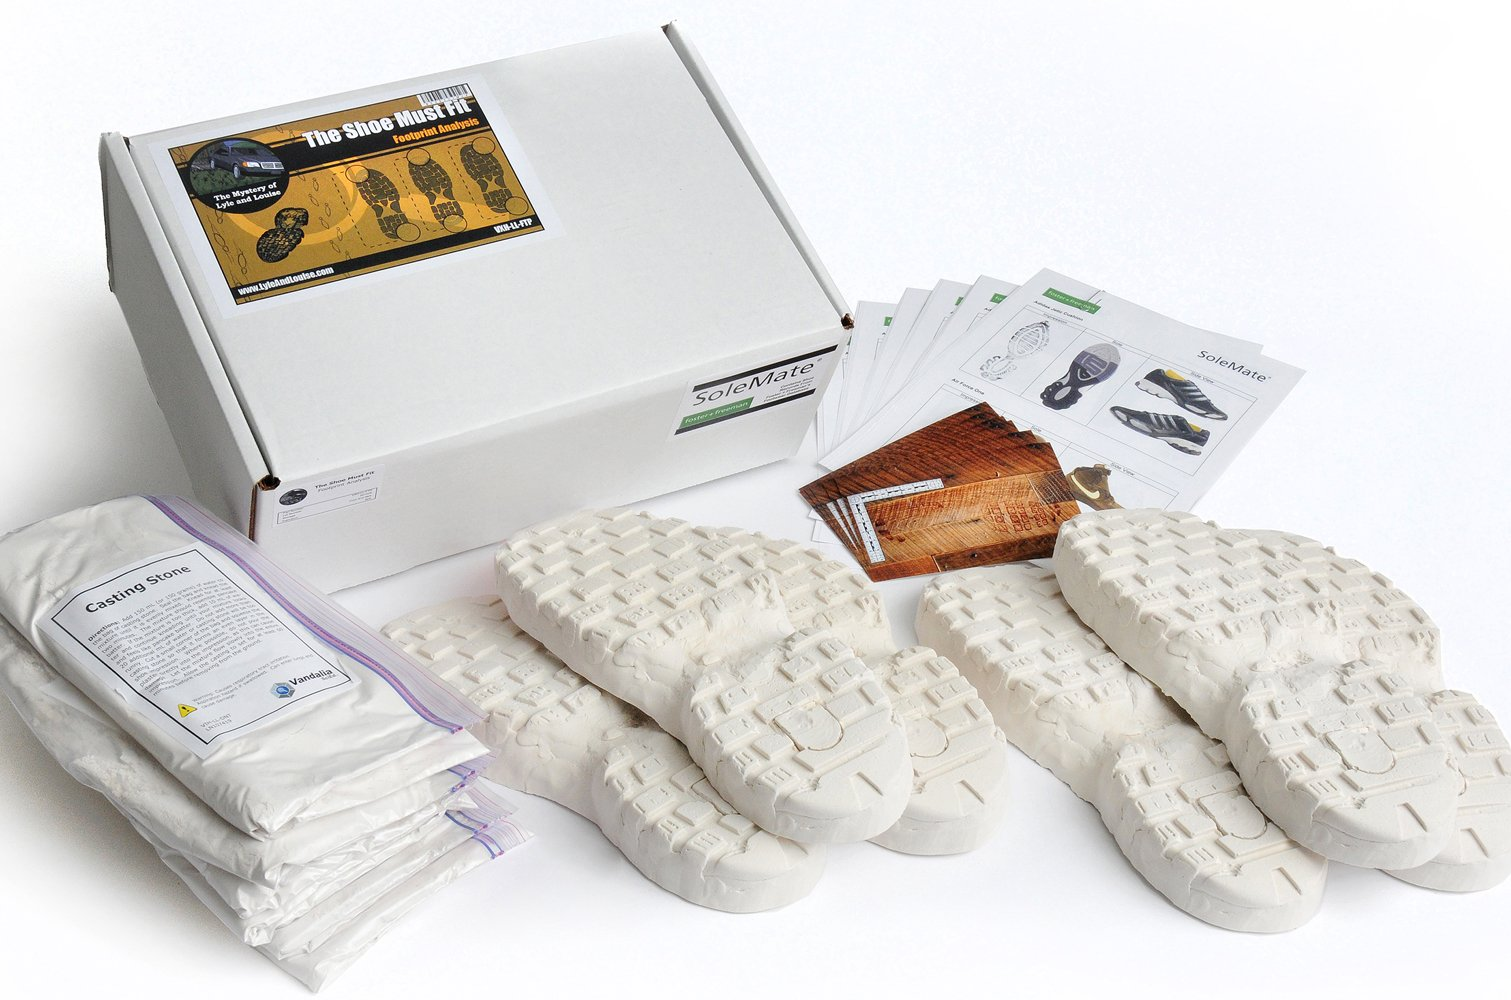 Crosscutting Concepts VXH-LL-FTP Lyle and Louise The Shoe Must Fit Footprint Analysis Kit